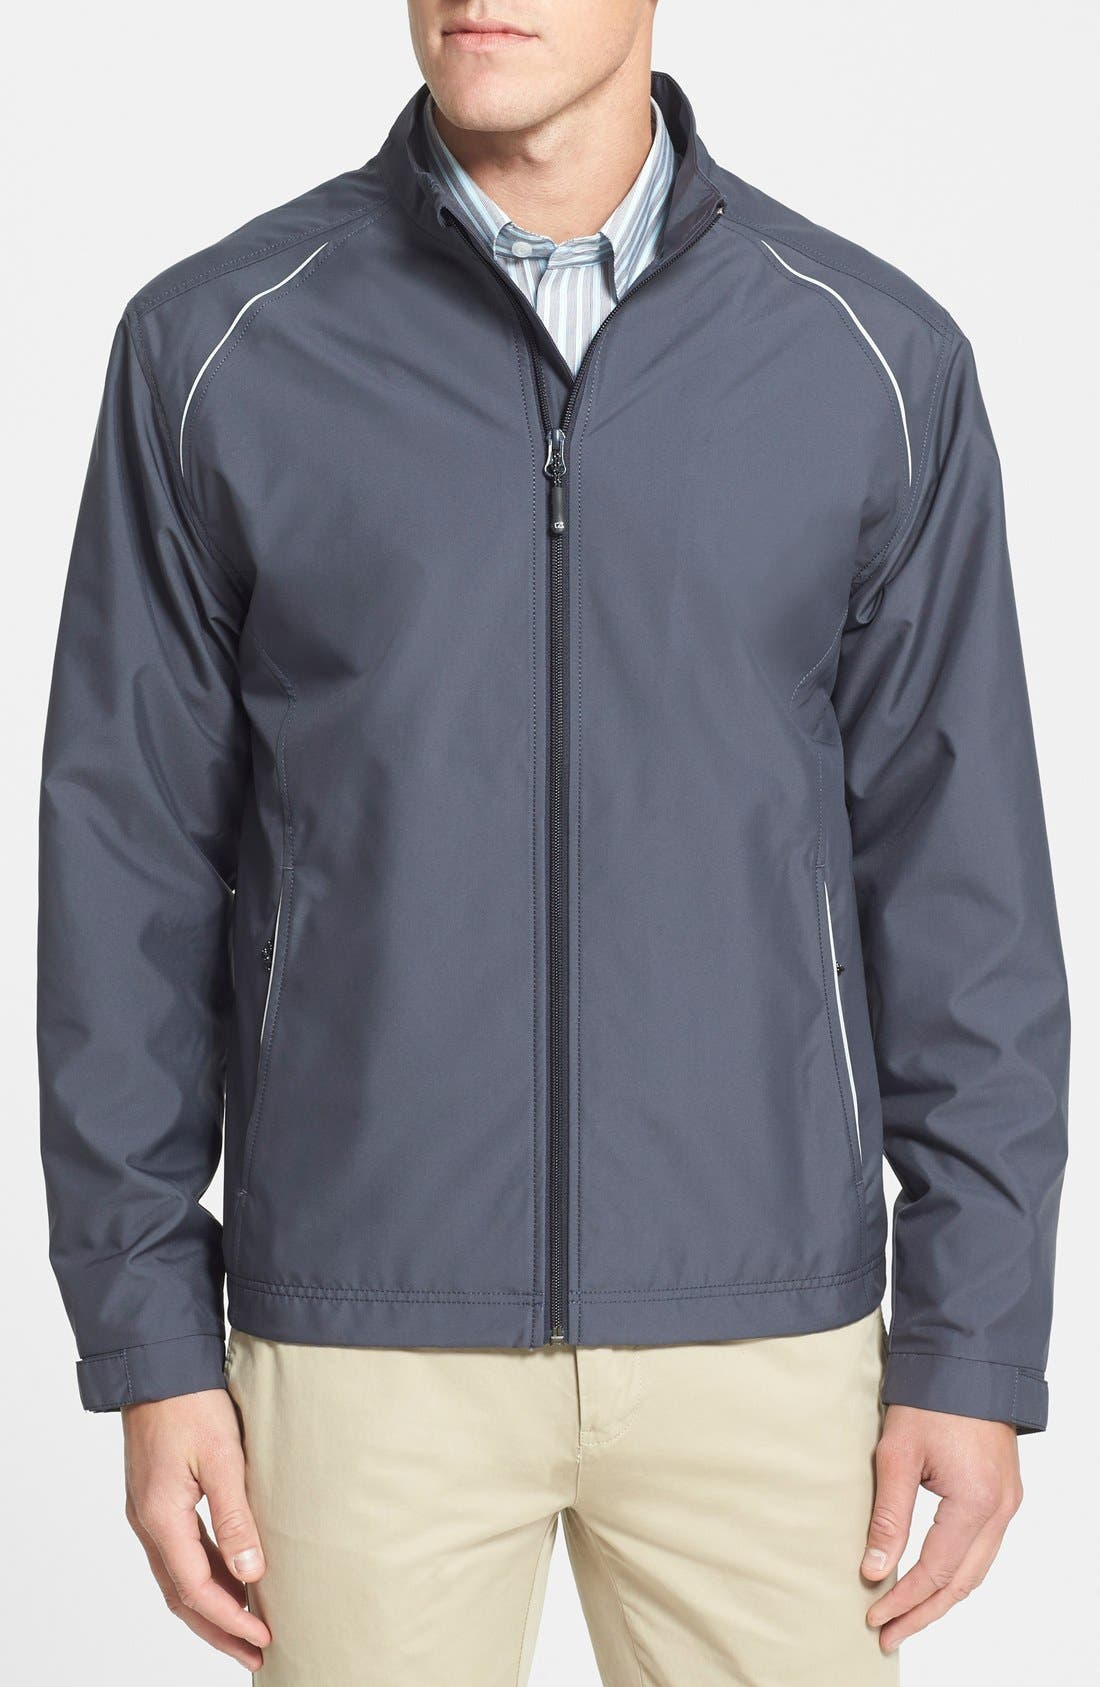 Beacon WeatherTec Wind & Water Resistant Jacket,                             Main thumbnail 1, color,                             ONYX GREY